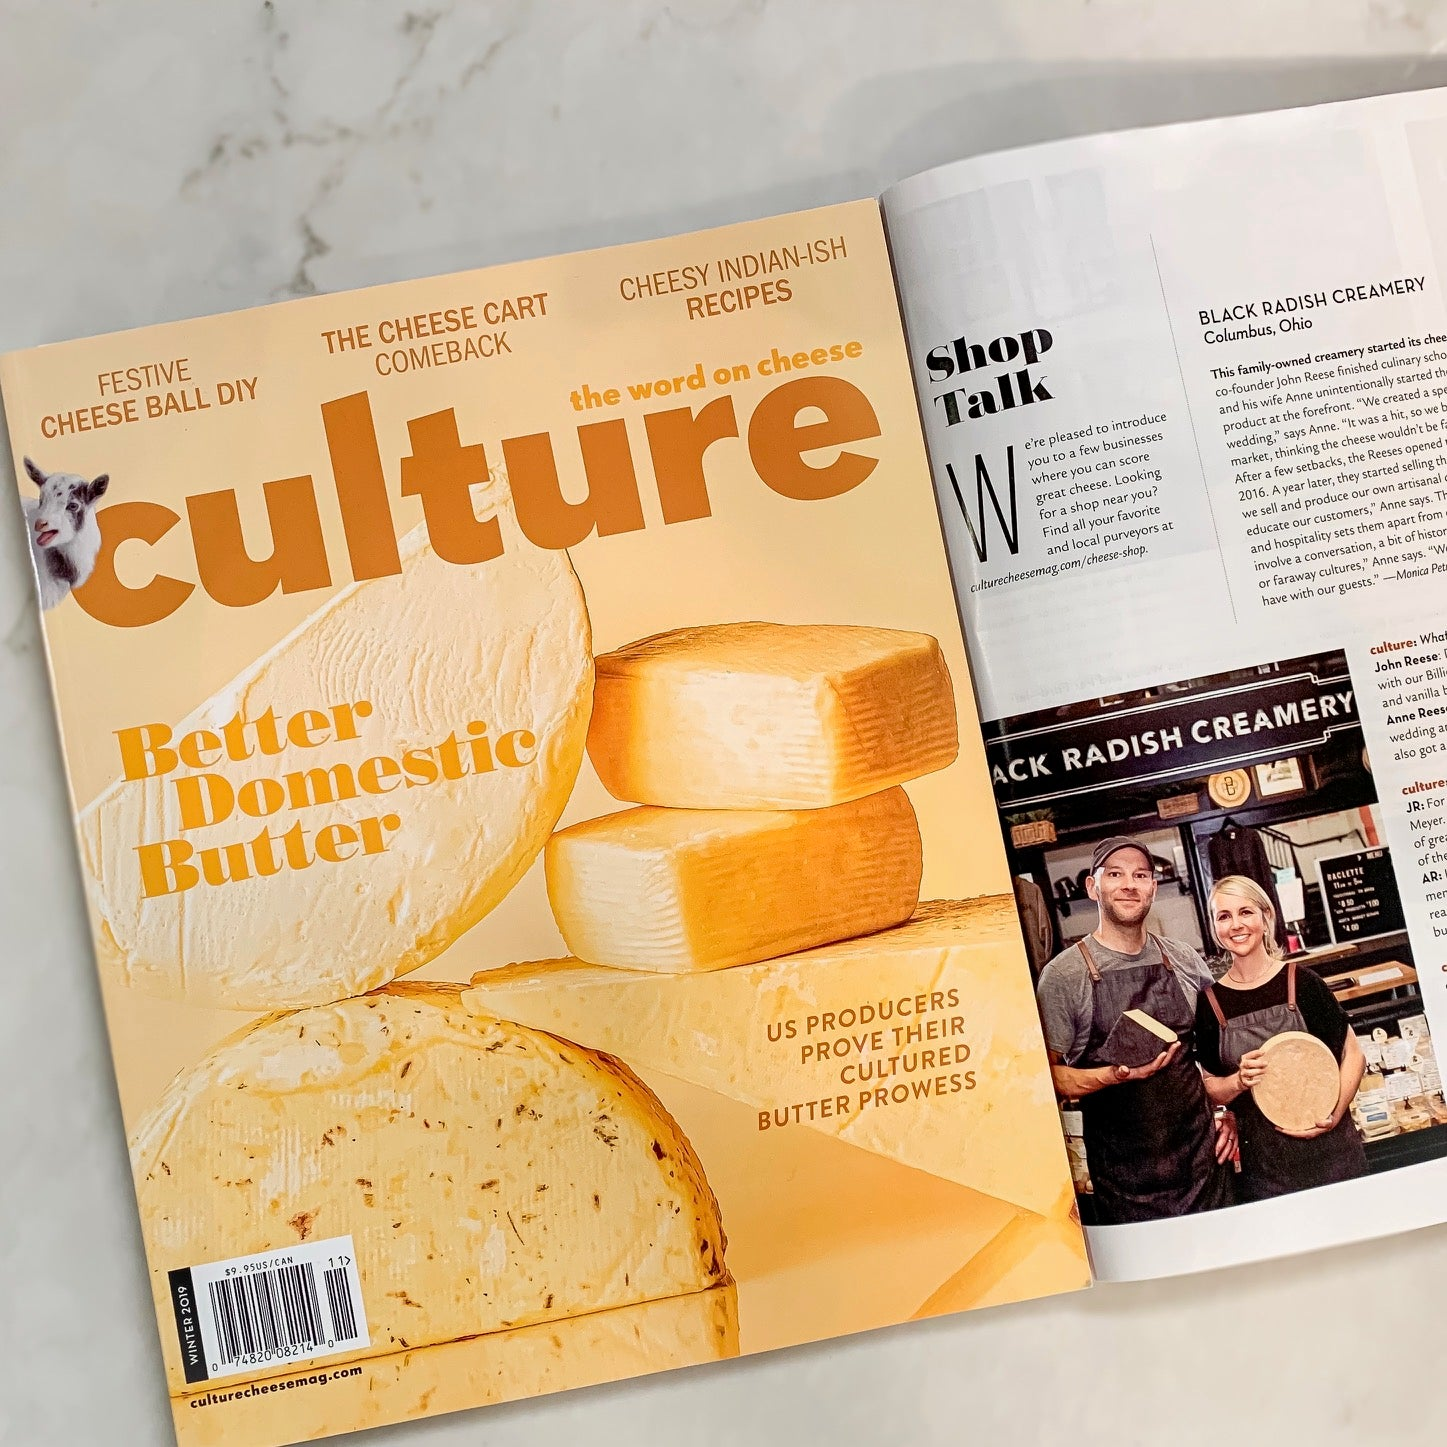 BRC Cheese Shop Featured in Culture Magazine!